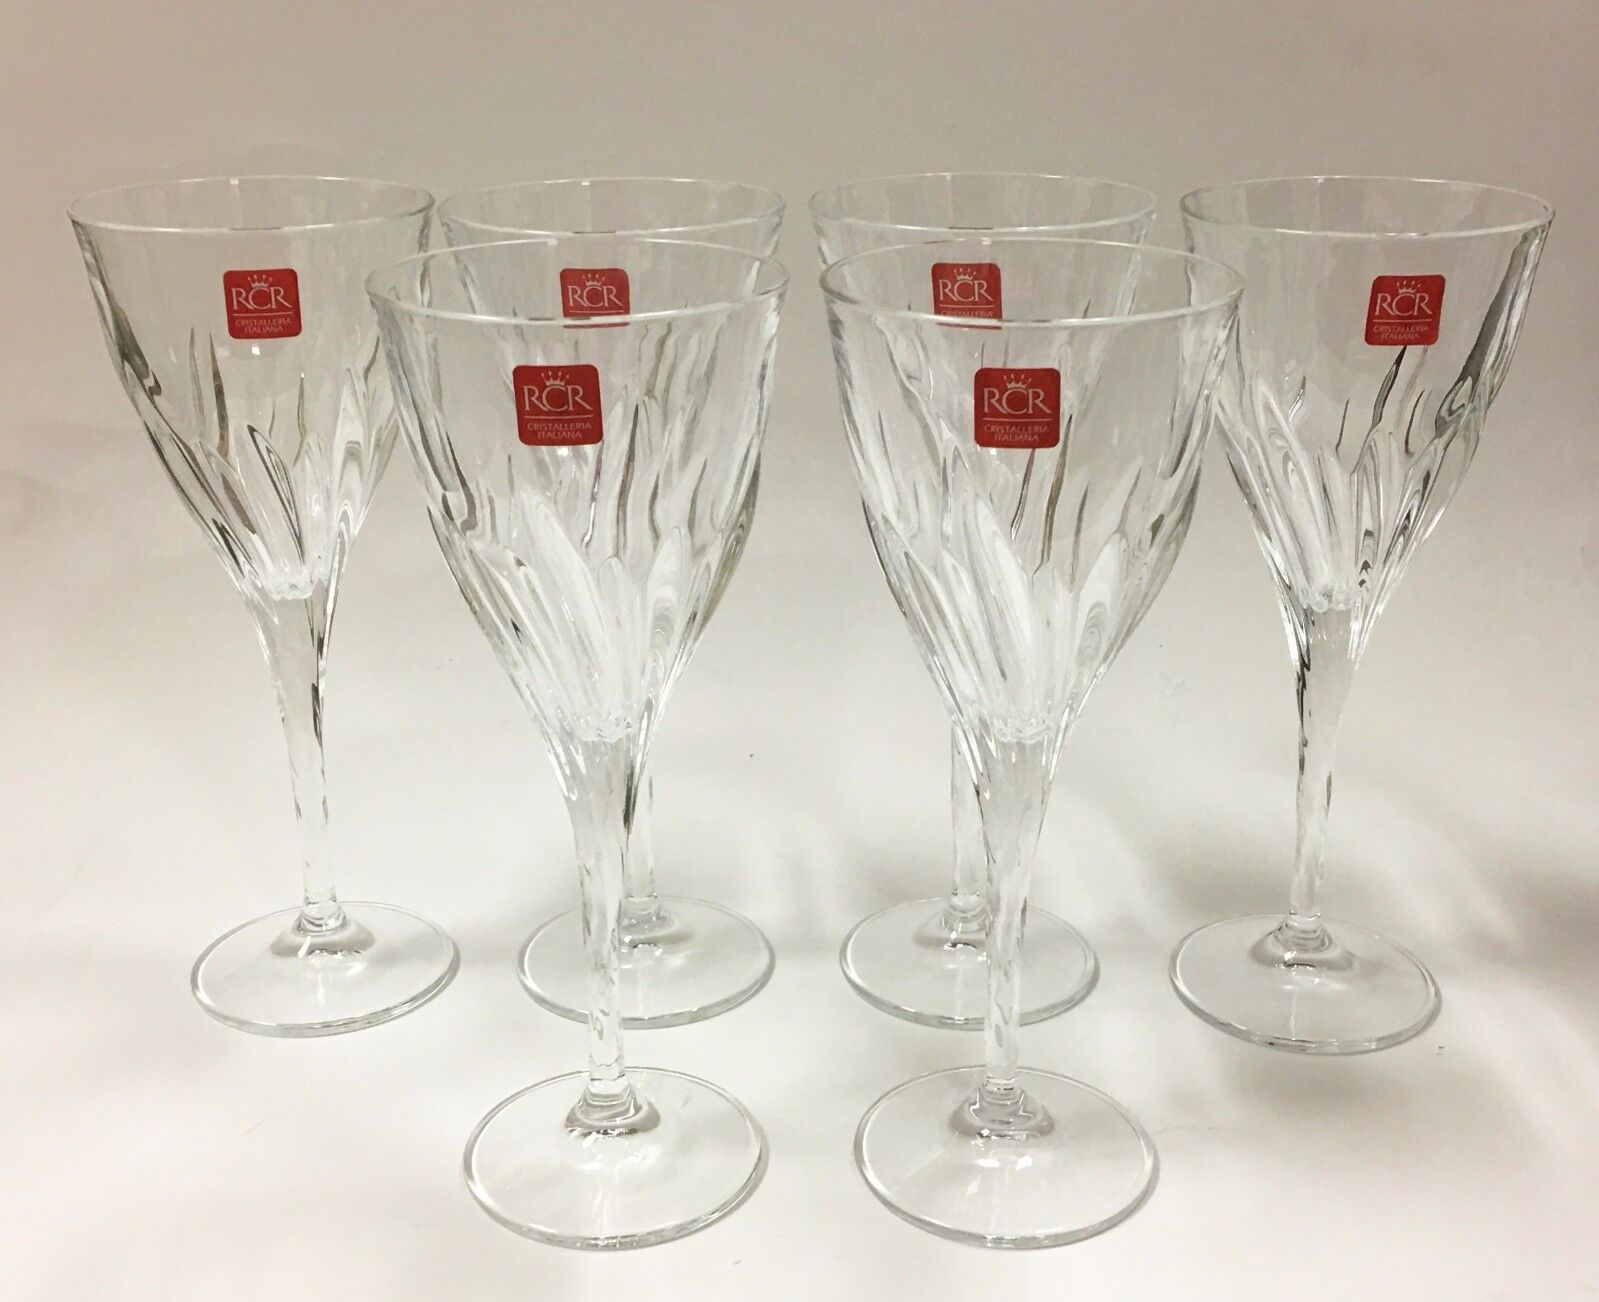 SET OF 6,12 RCR FLUENTE CLEAR CRYSTAL WINE GLASS GOBLETS-9 3 4 OZ-ITALY